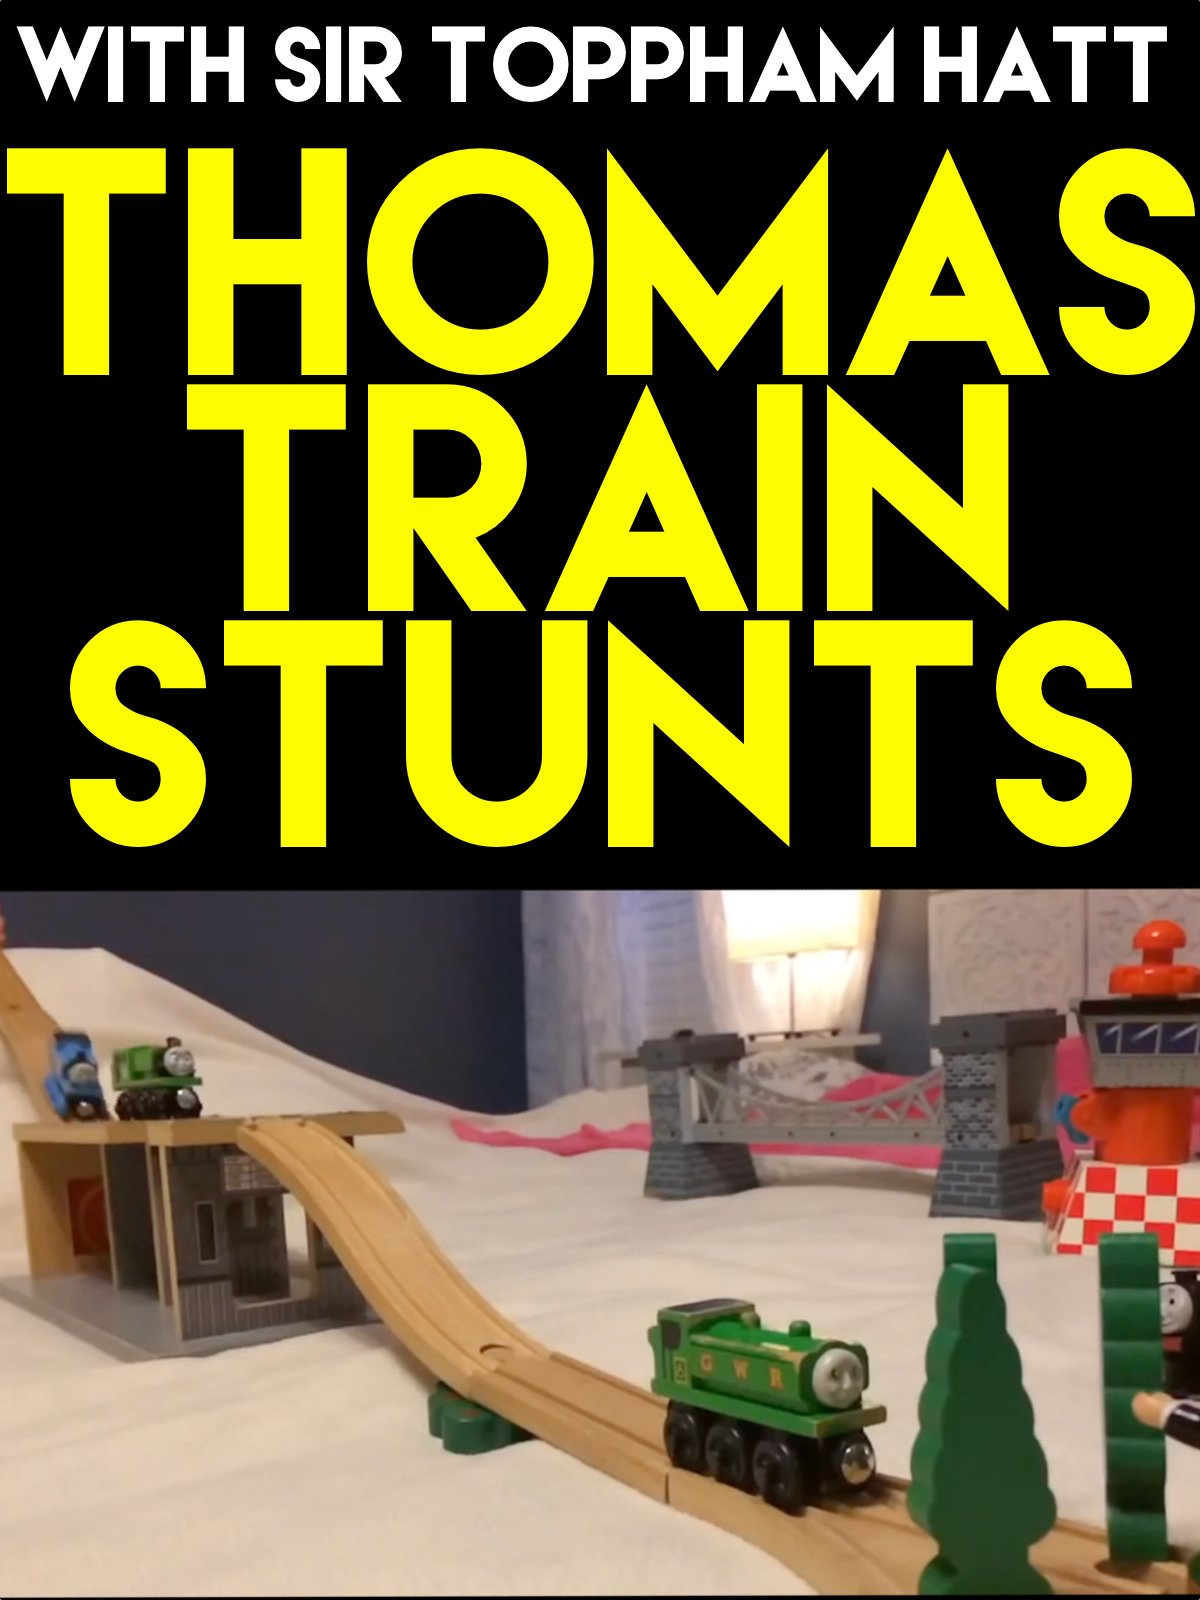 Clip: Thomas Train Stunts with Sir Toppham Hatt